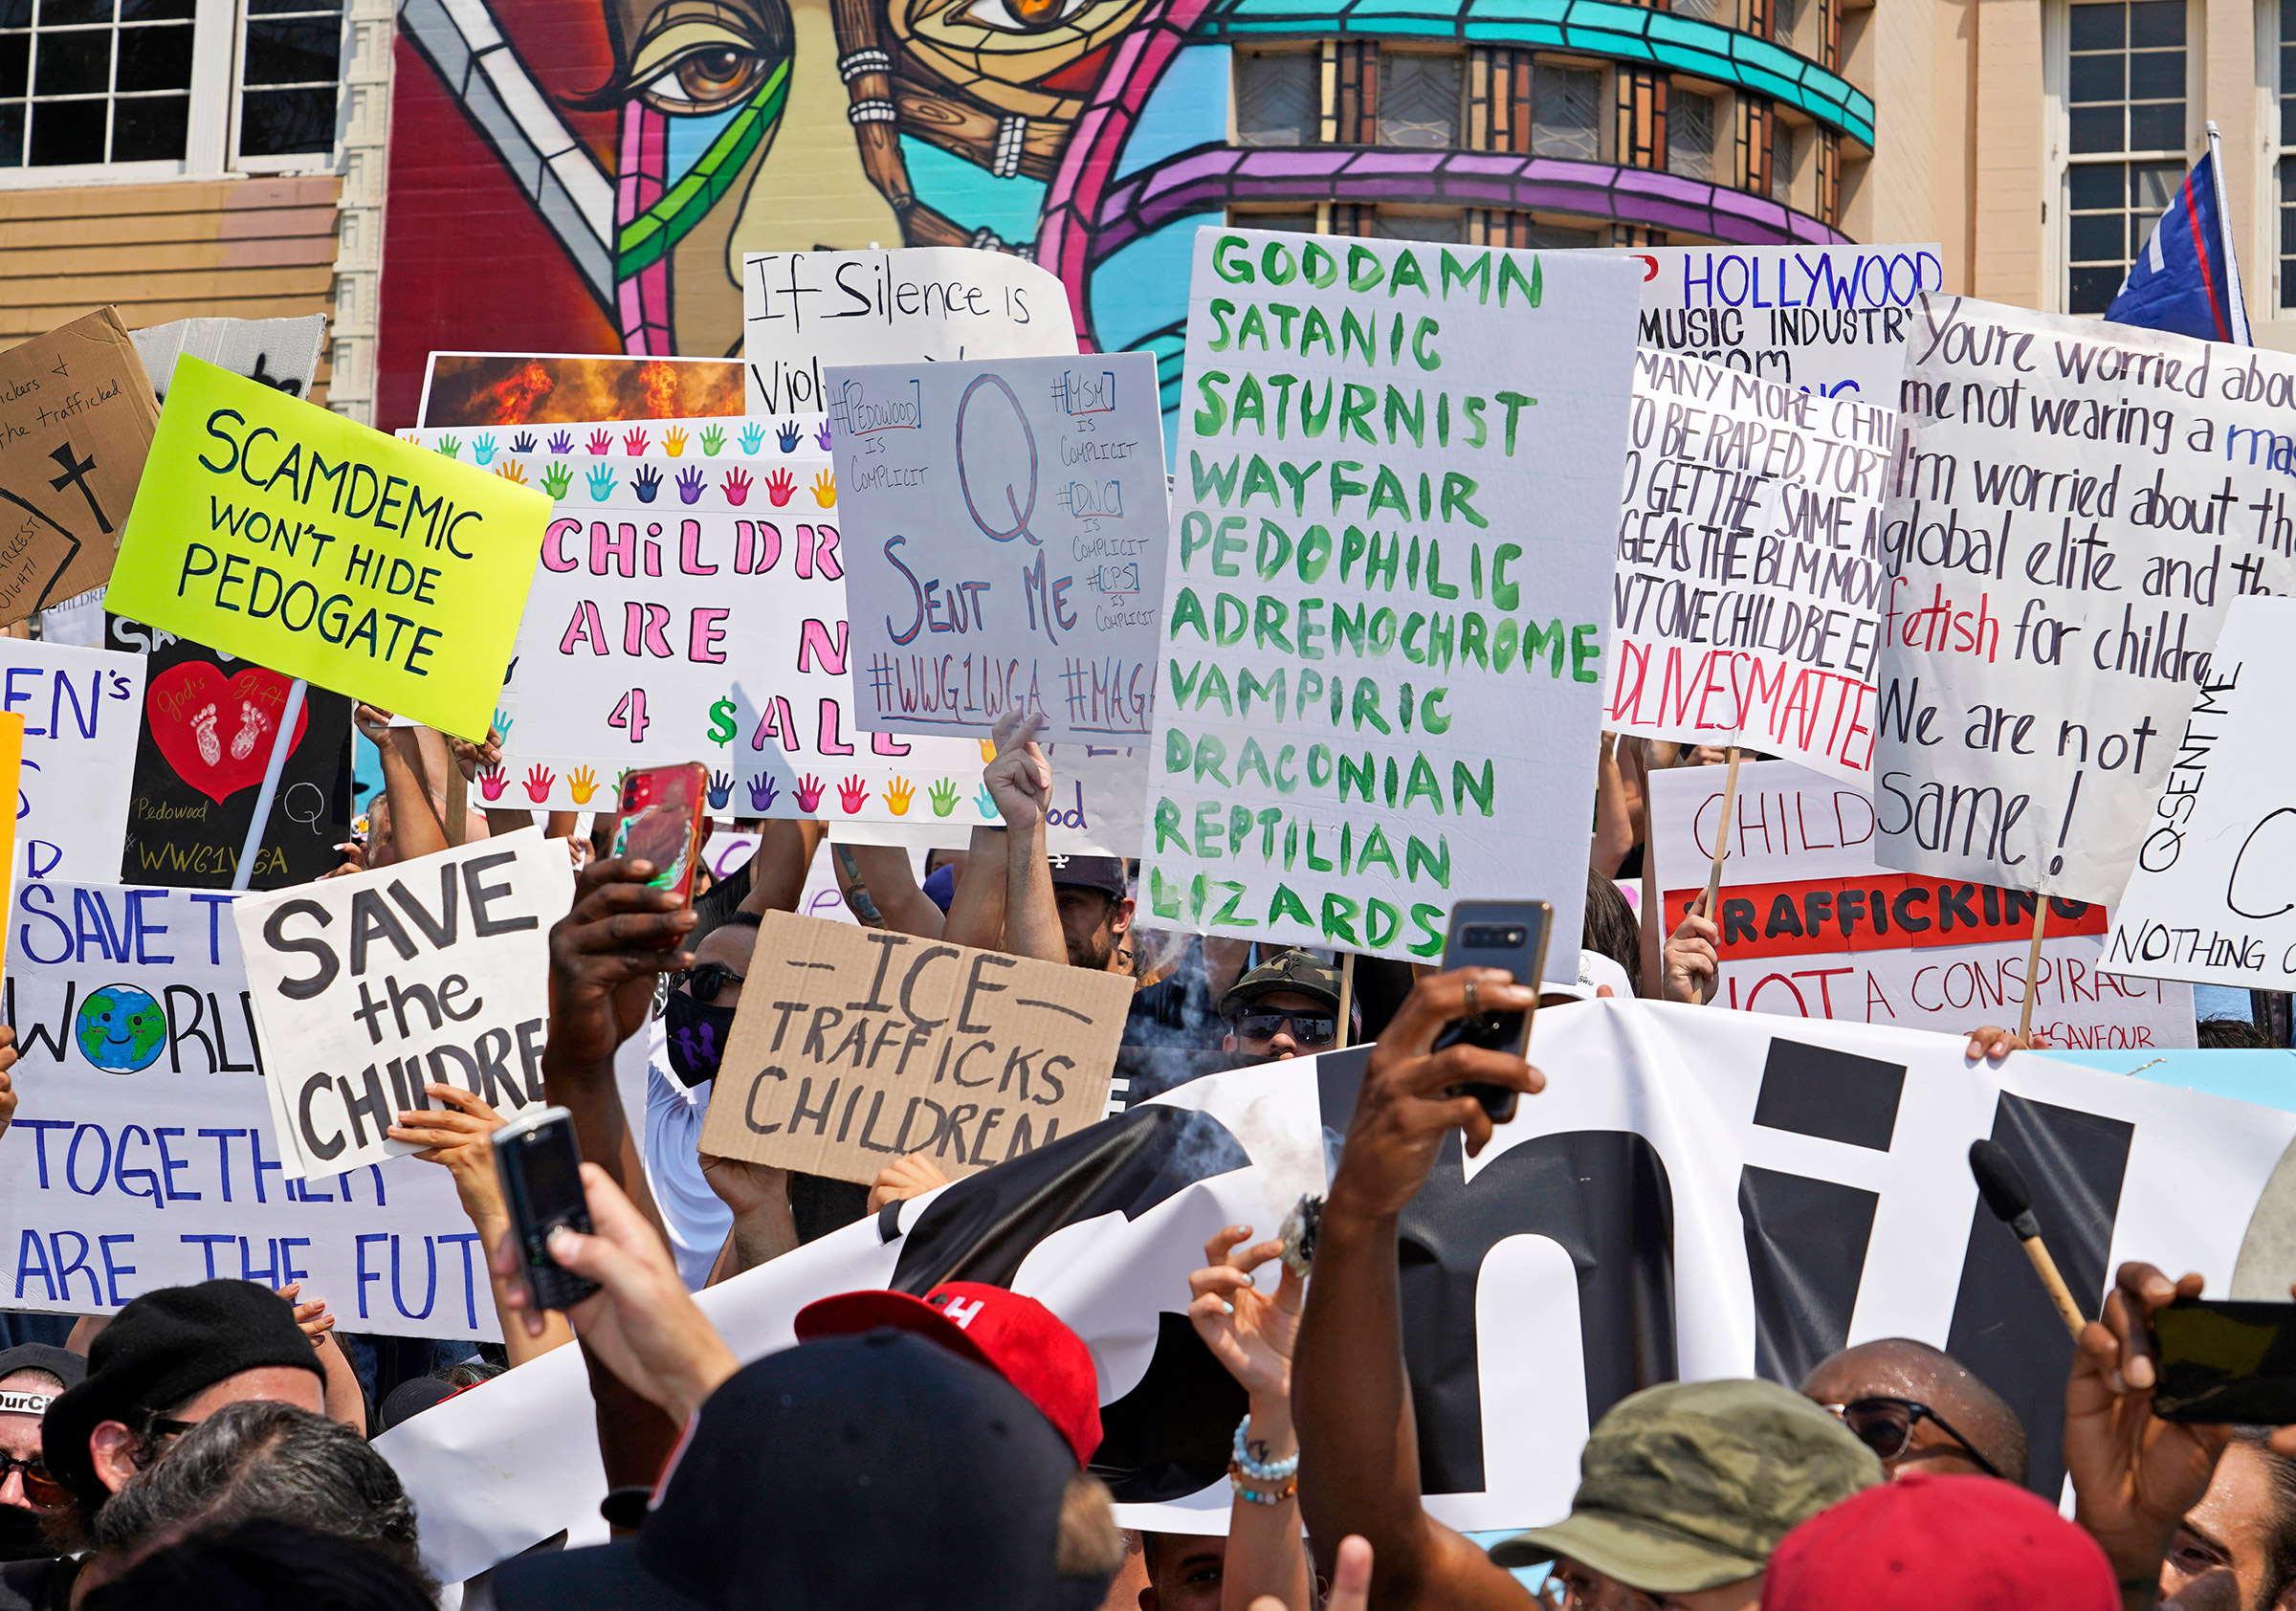 Signs showing various conspiracy theories at a Save Our Children rally in Los Angeles, Aug. 22, 2020.